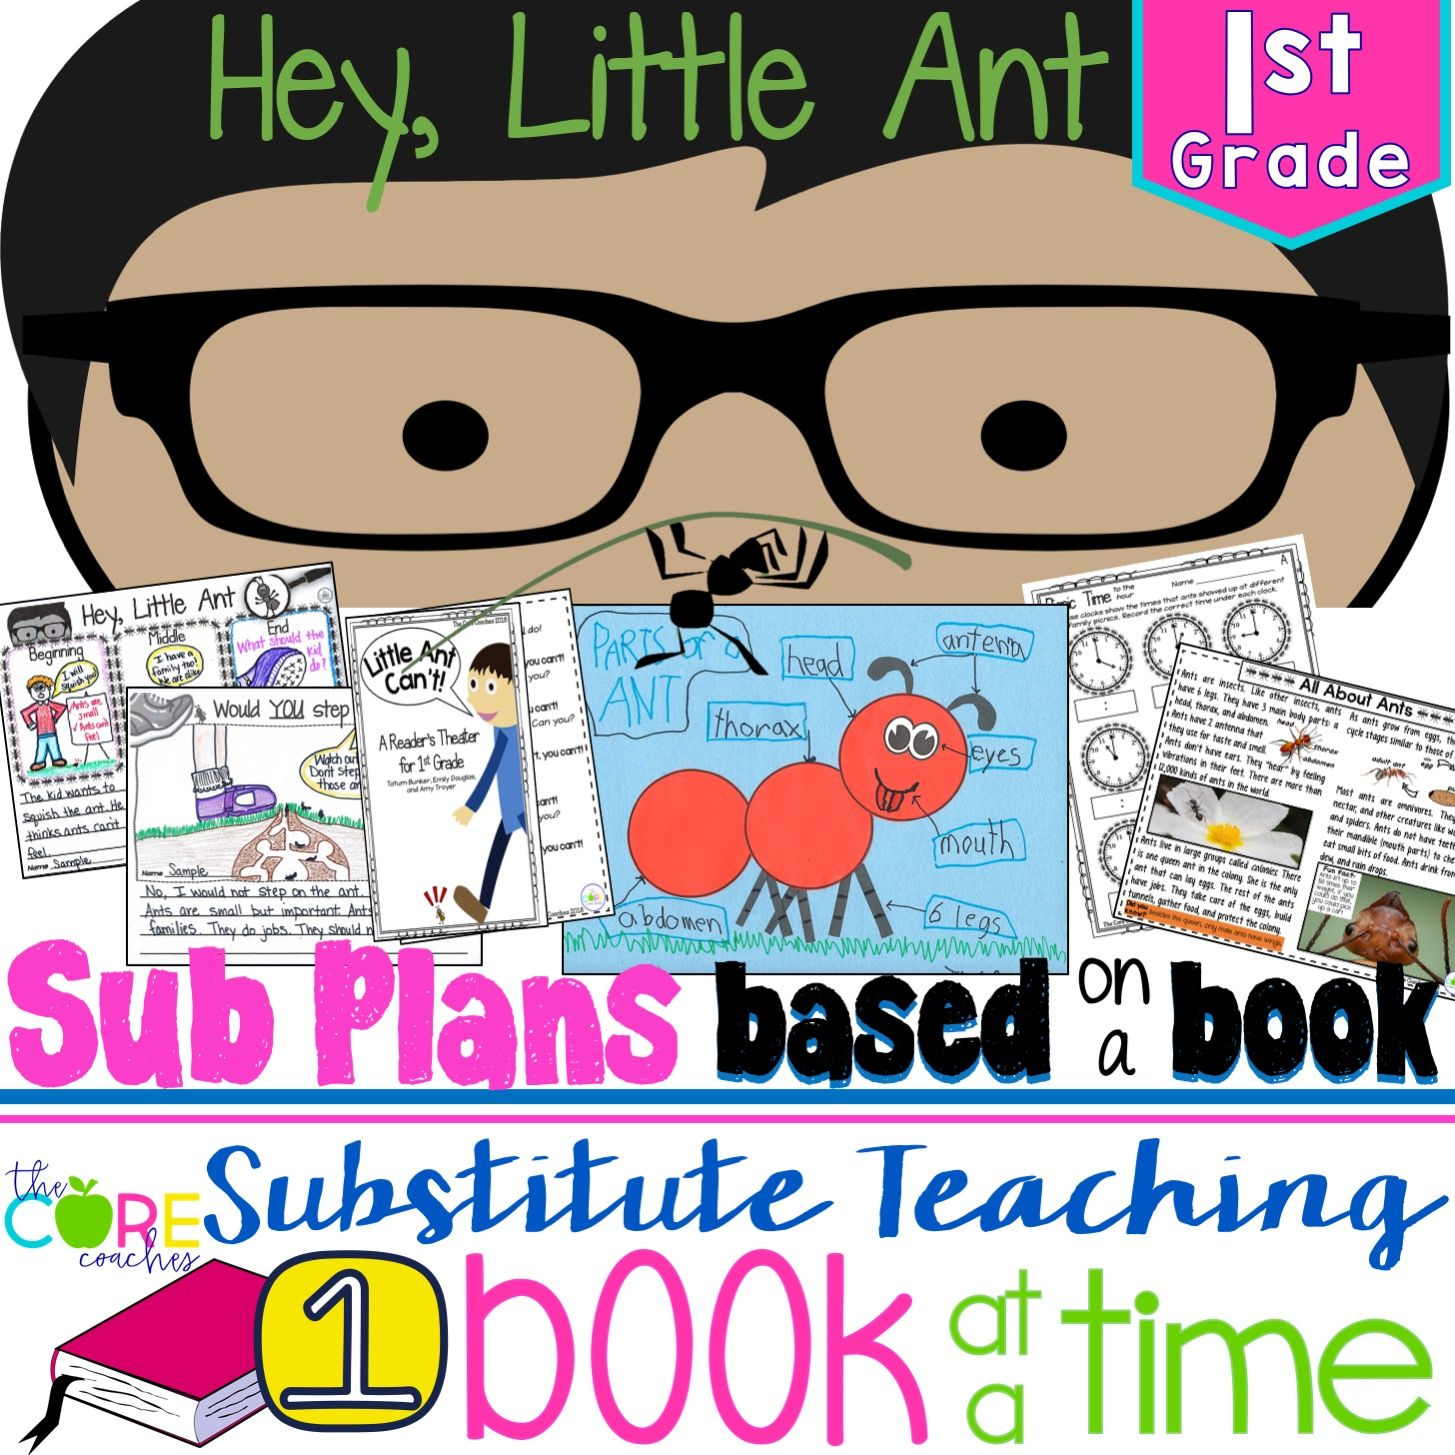 Full-day substitute lesson plans for 1st grade based on the book Hey Little Ant.Differentiated to be used any time during the year.